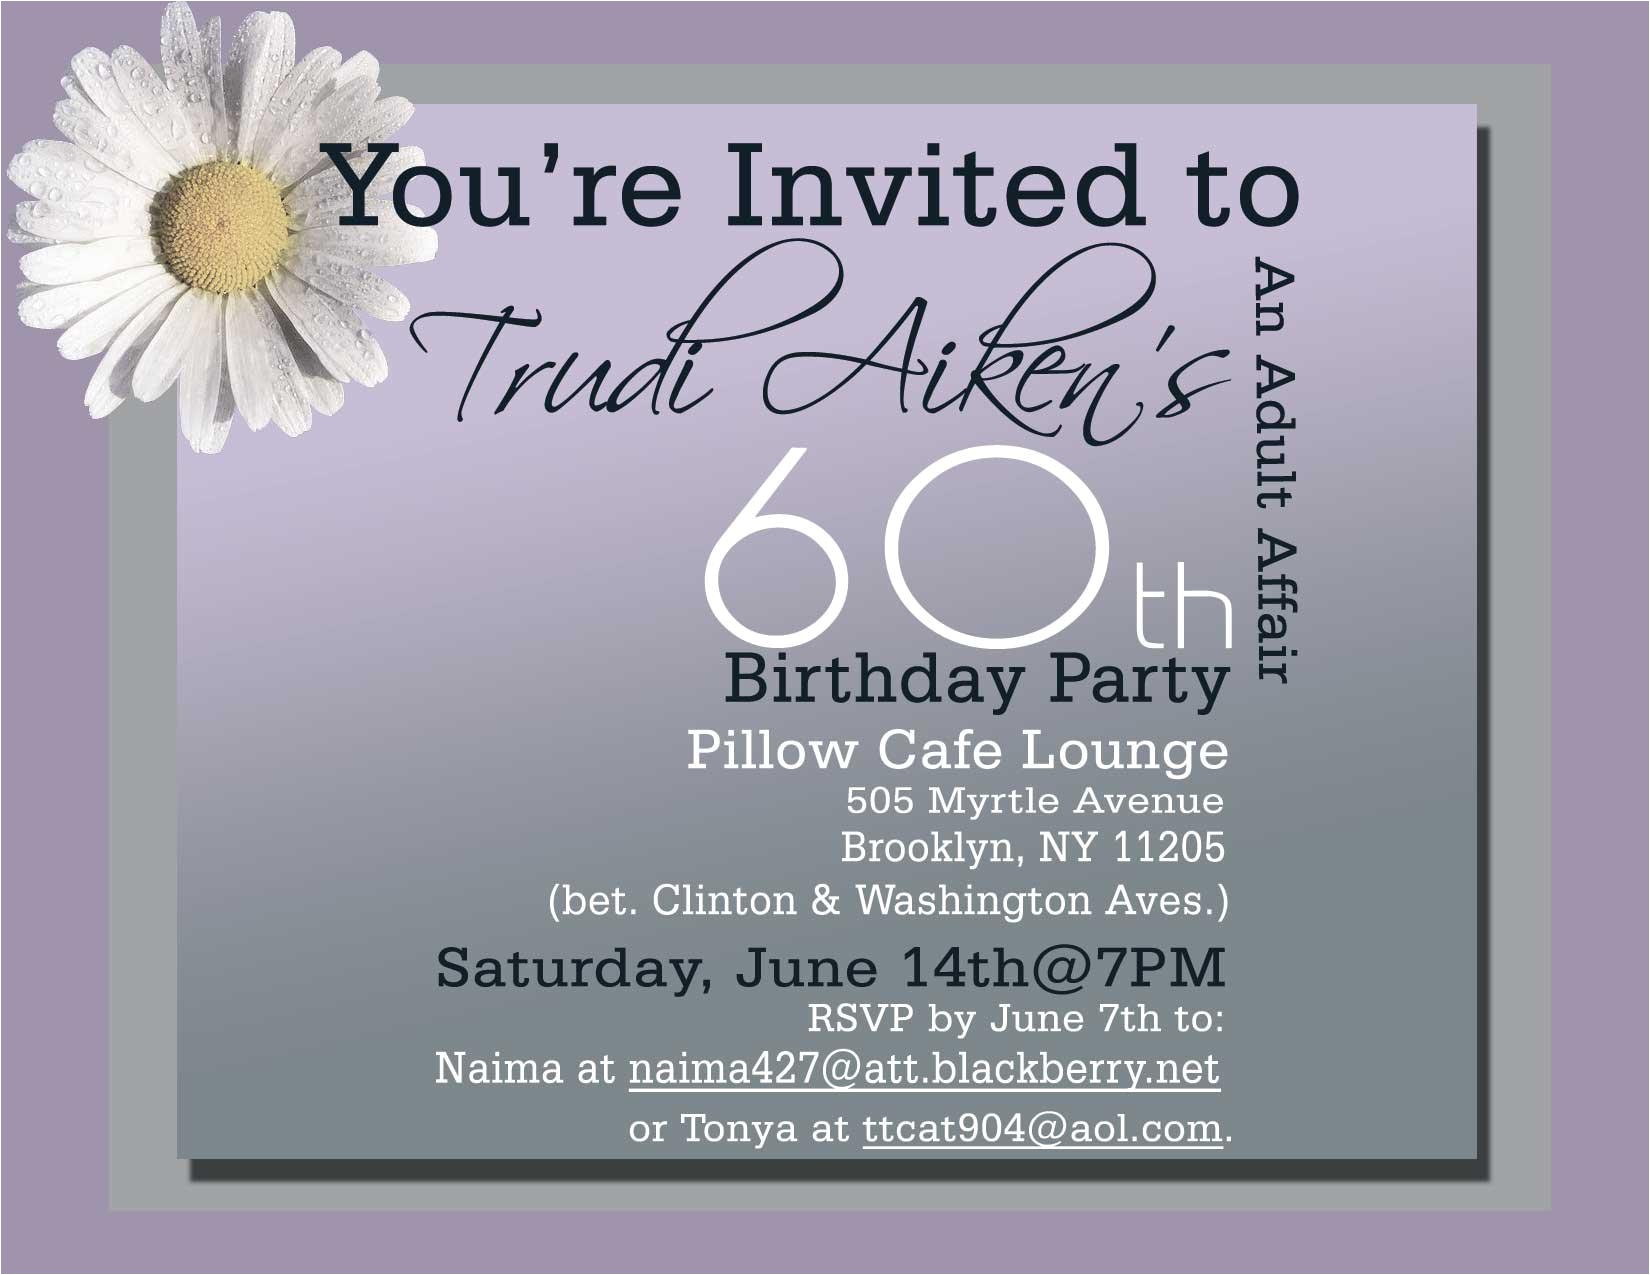 unique ideas for 60th birthday invitations free with alluring layout the cool party invitations simple design 60th birthday invitations silverlininginvitations